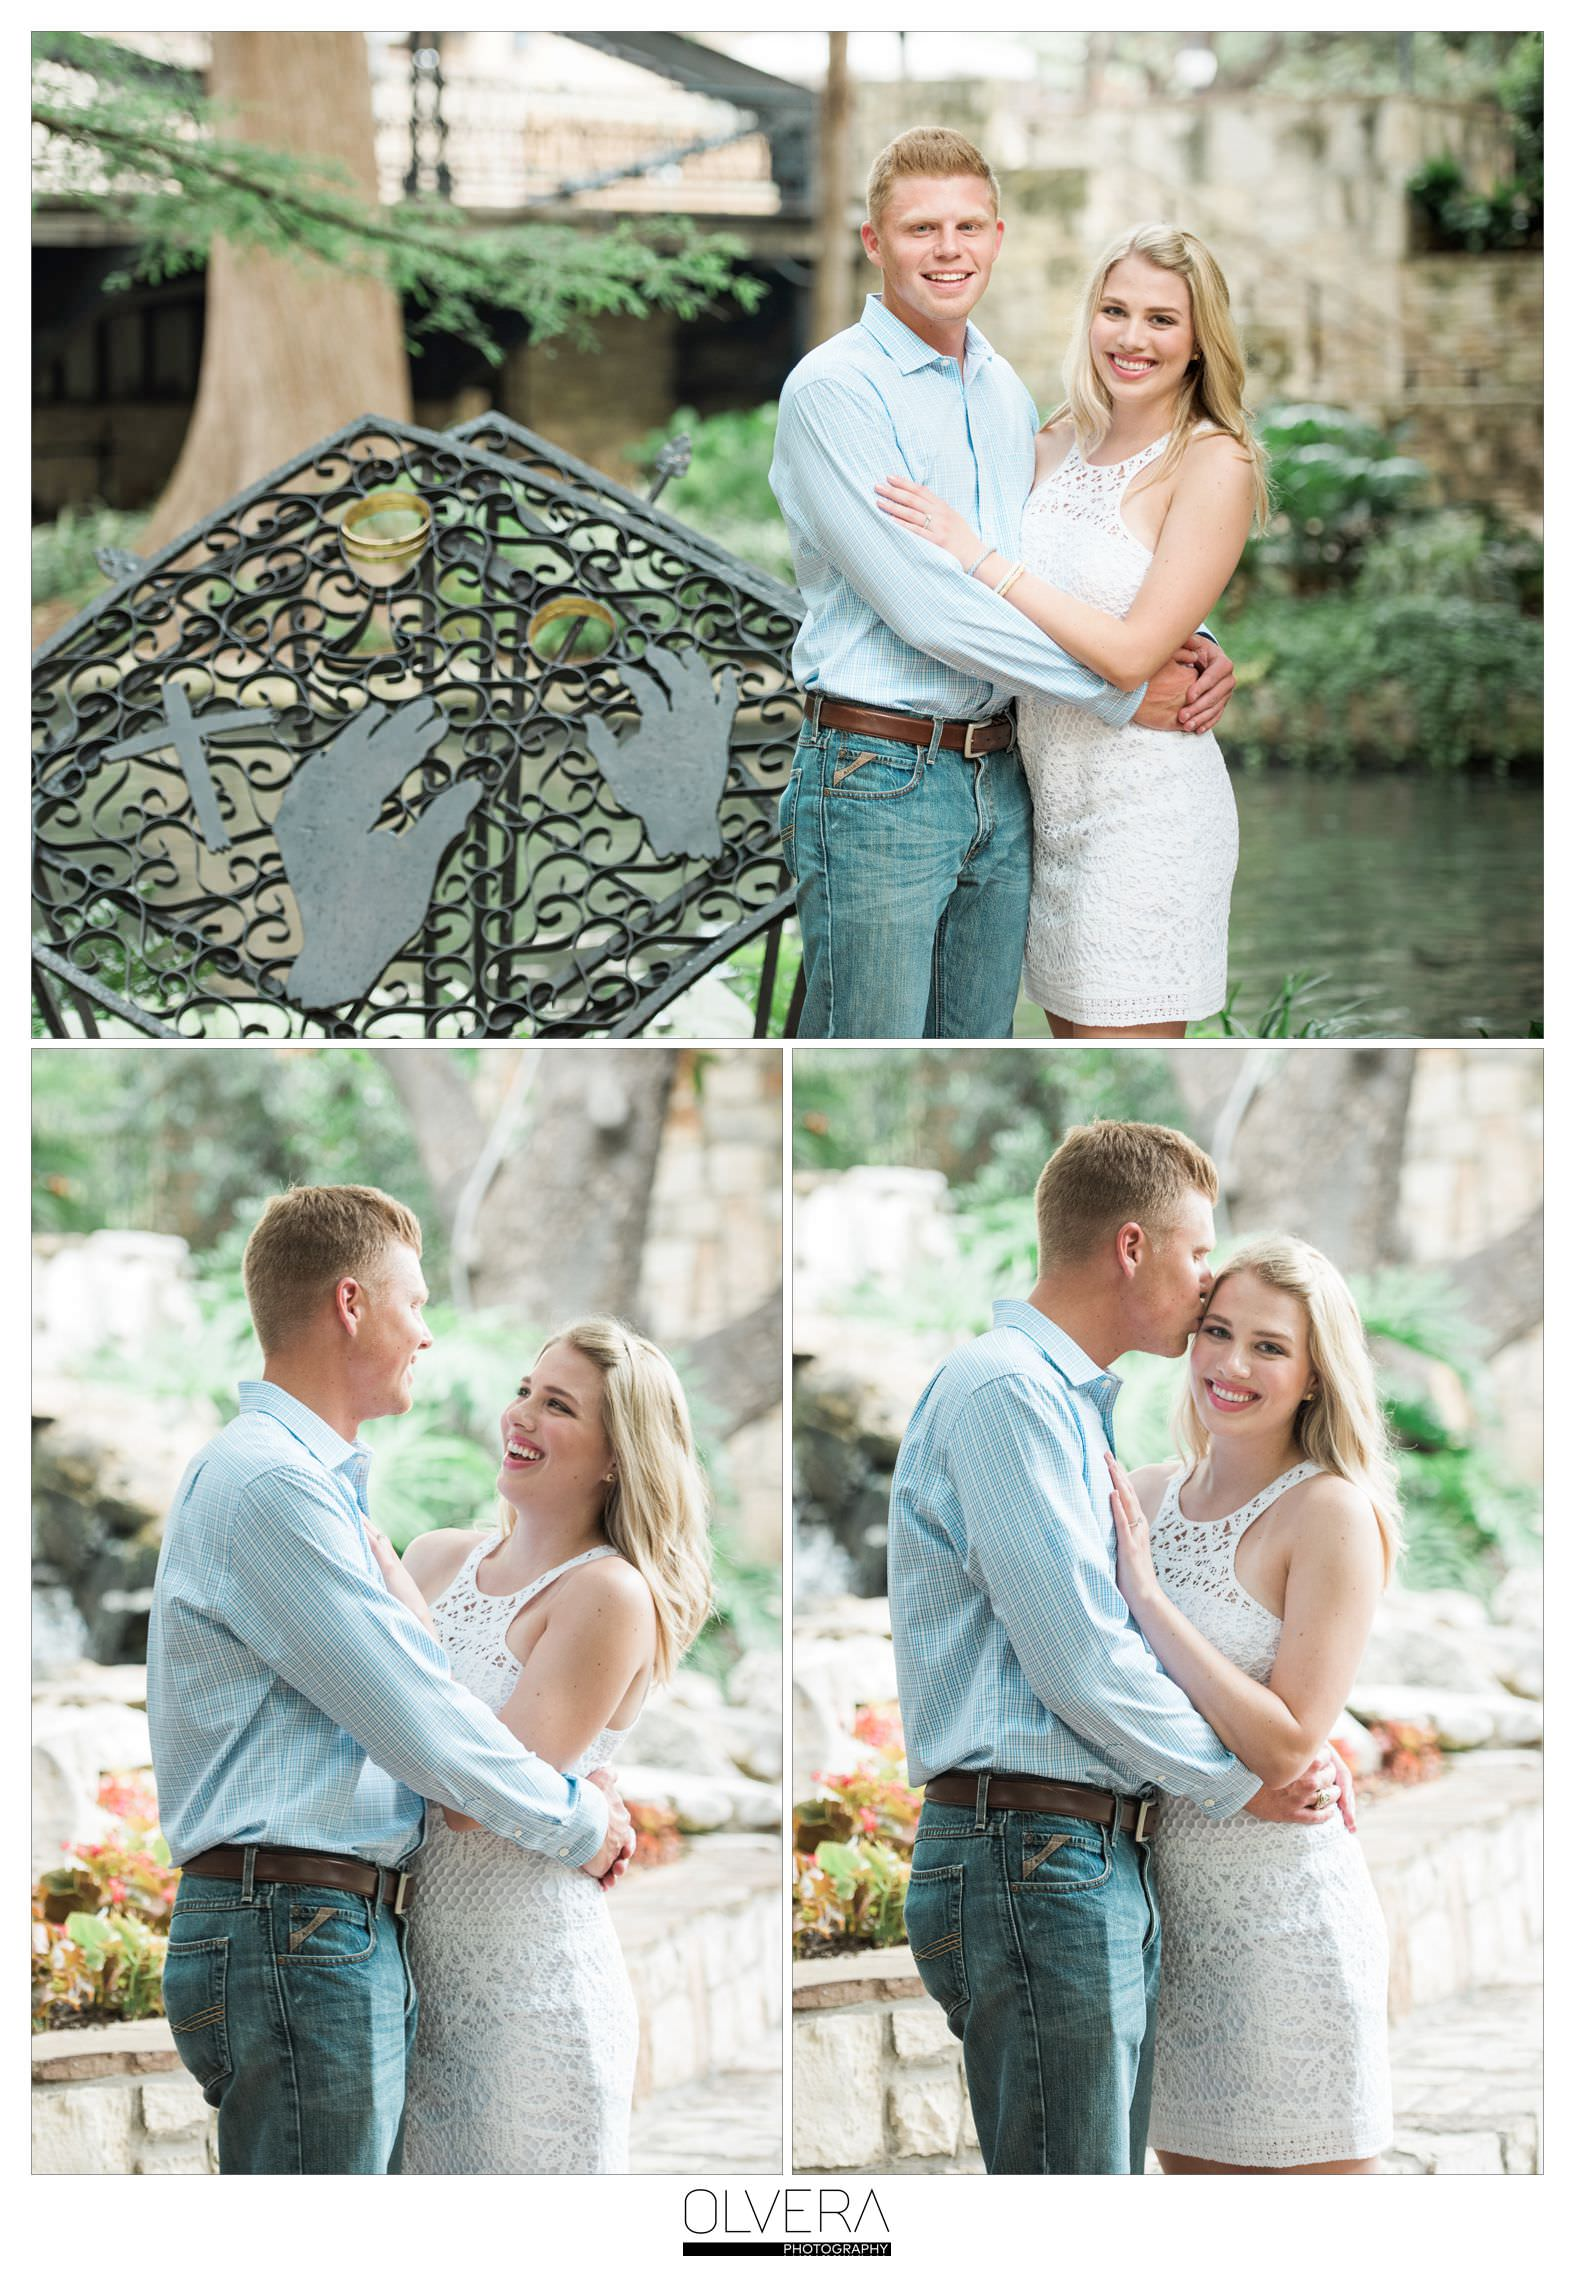 Riverwalk_Marriage Island_proposal_san antonio_TX_wedding photographer 2